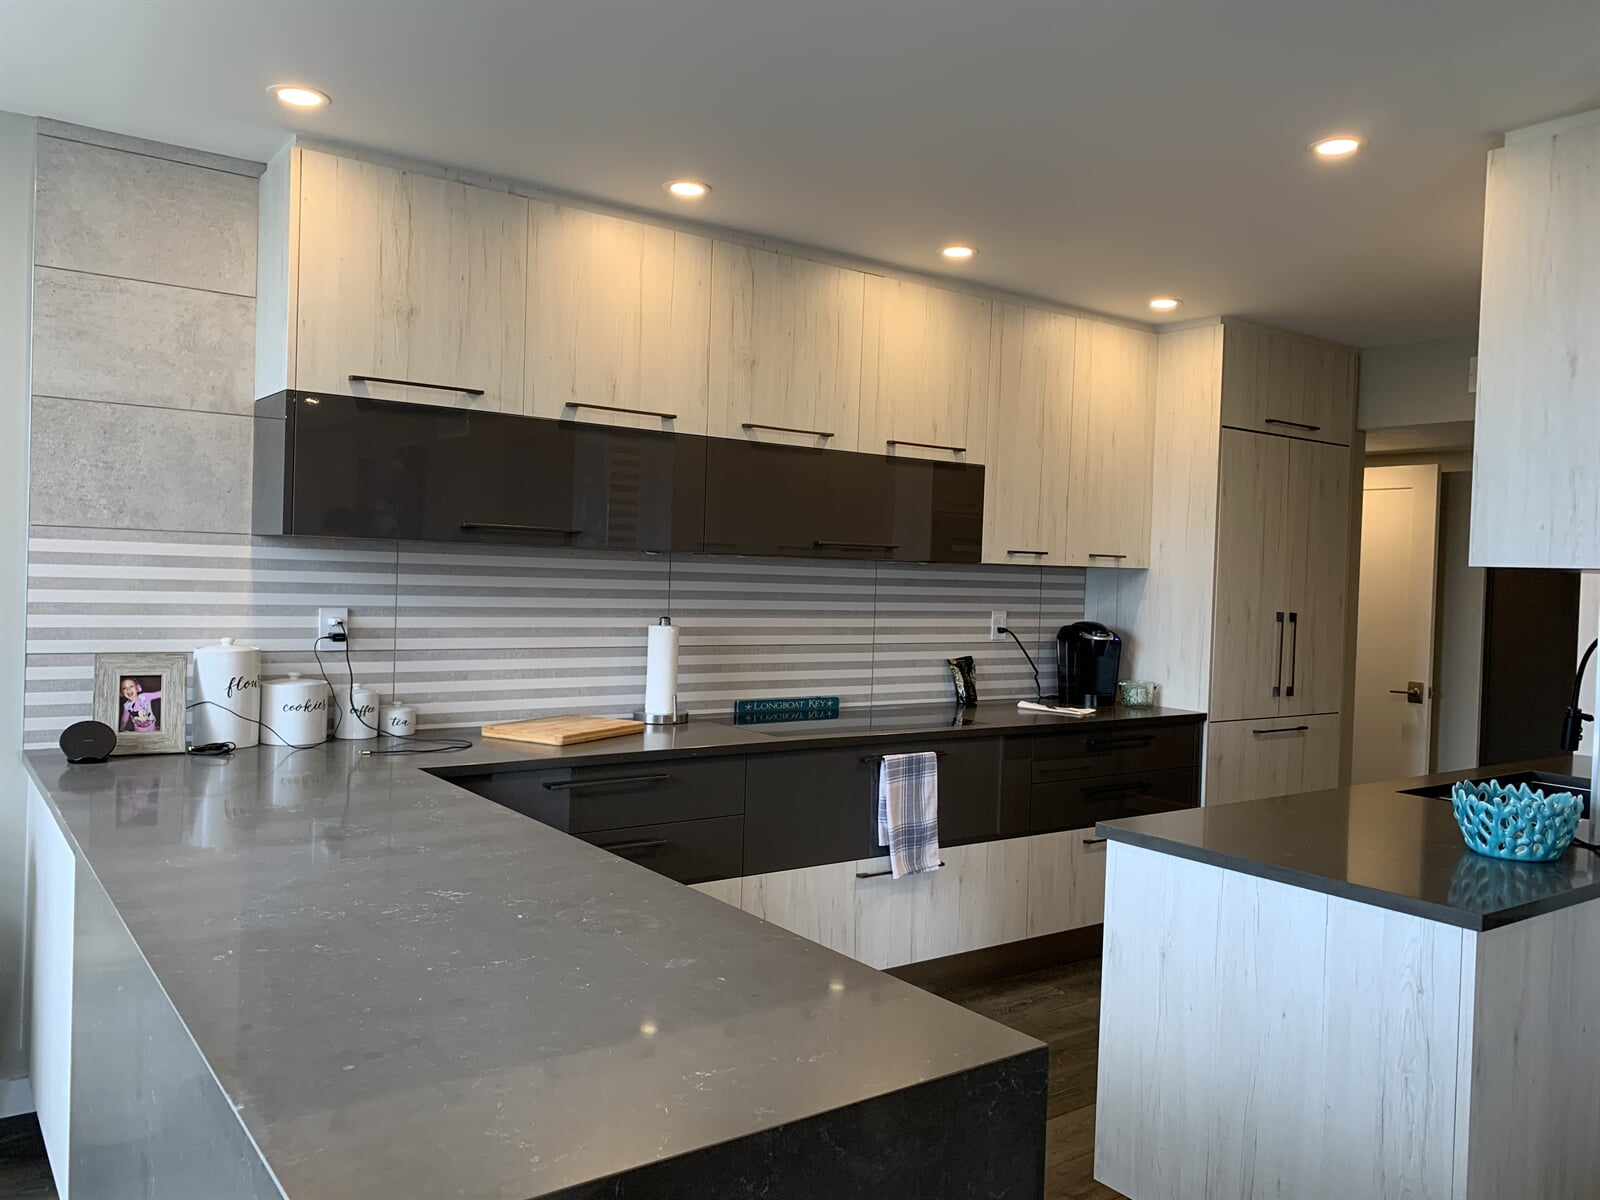 Custom kitchens in Siesta Key, FL by Floors and Walls of Distinction